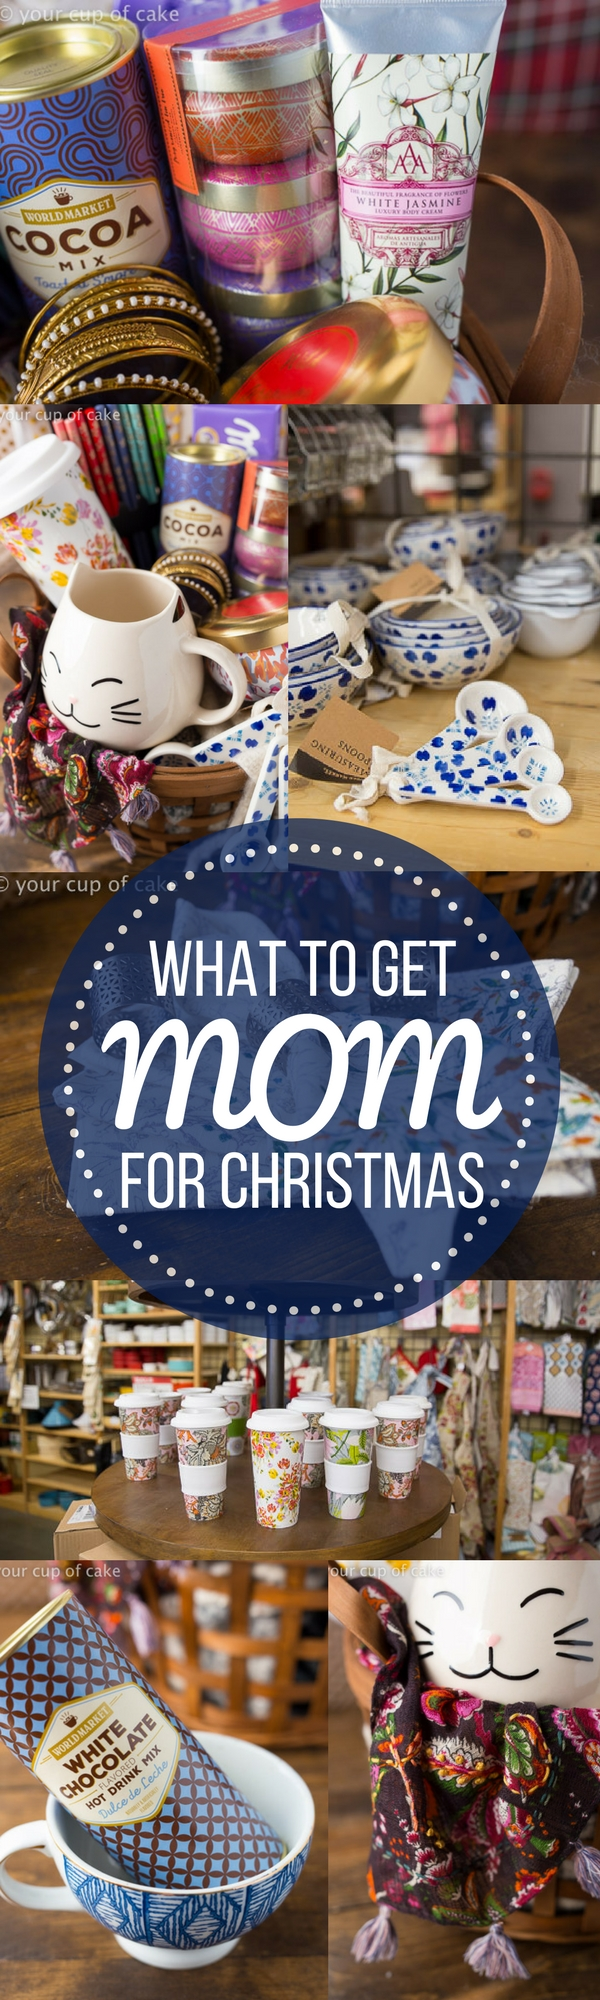 What to get Mom for Christmas: Gift ideas for every mom no matter who she is!